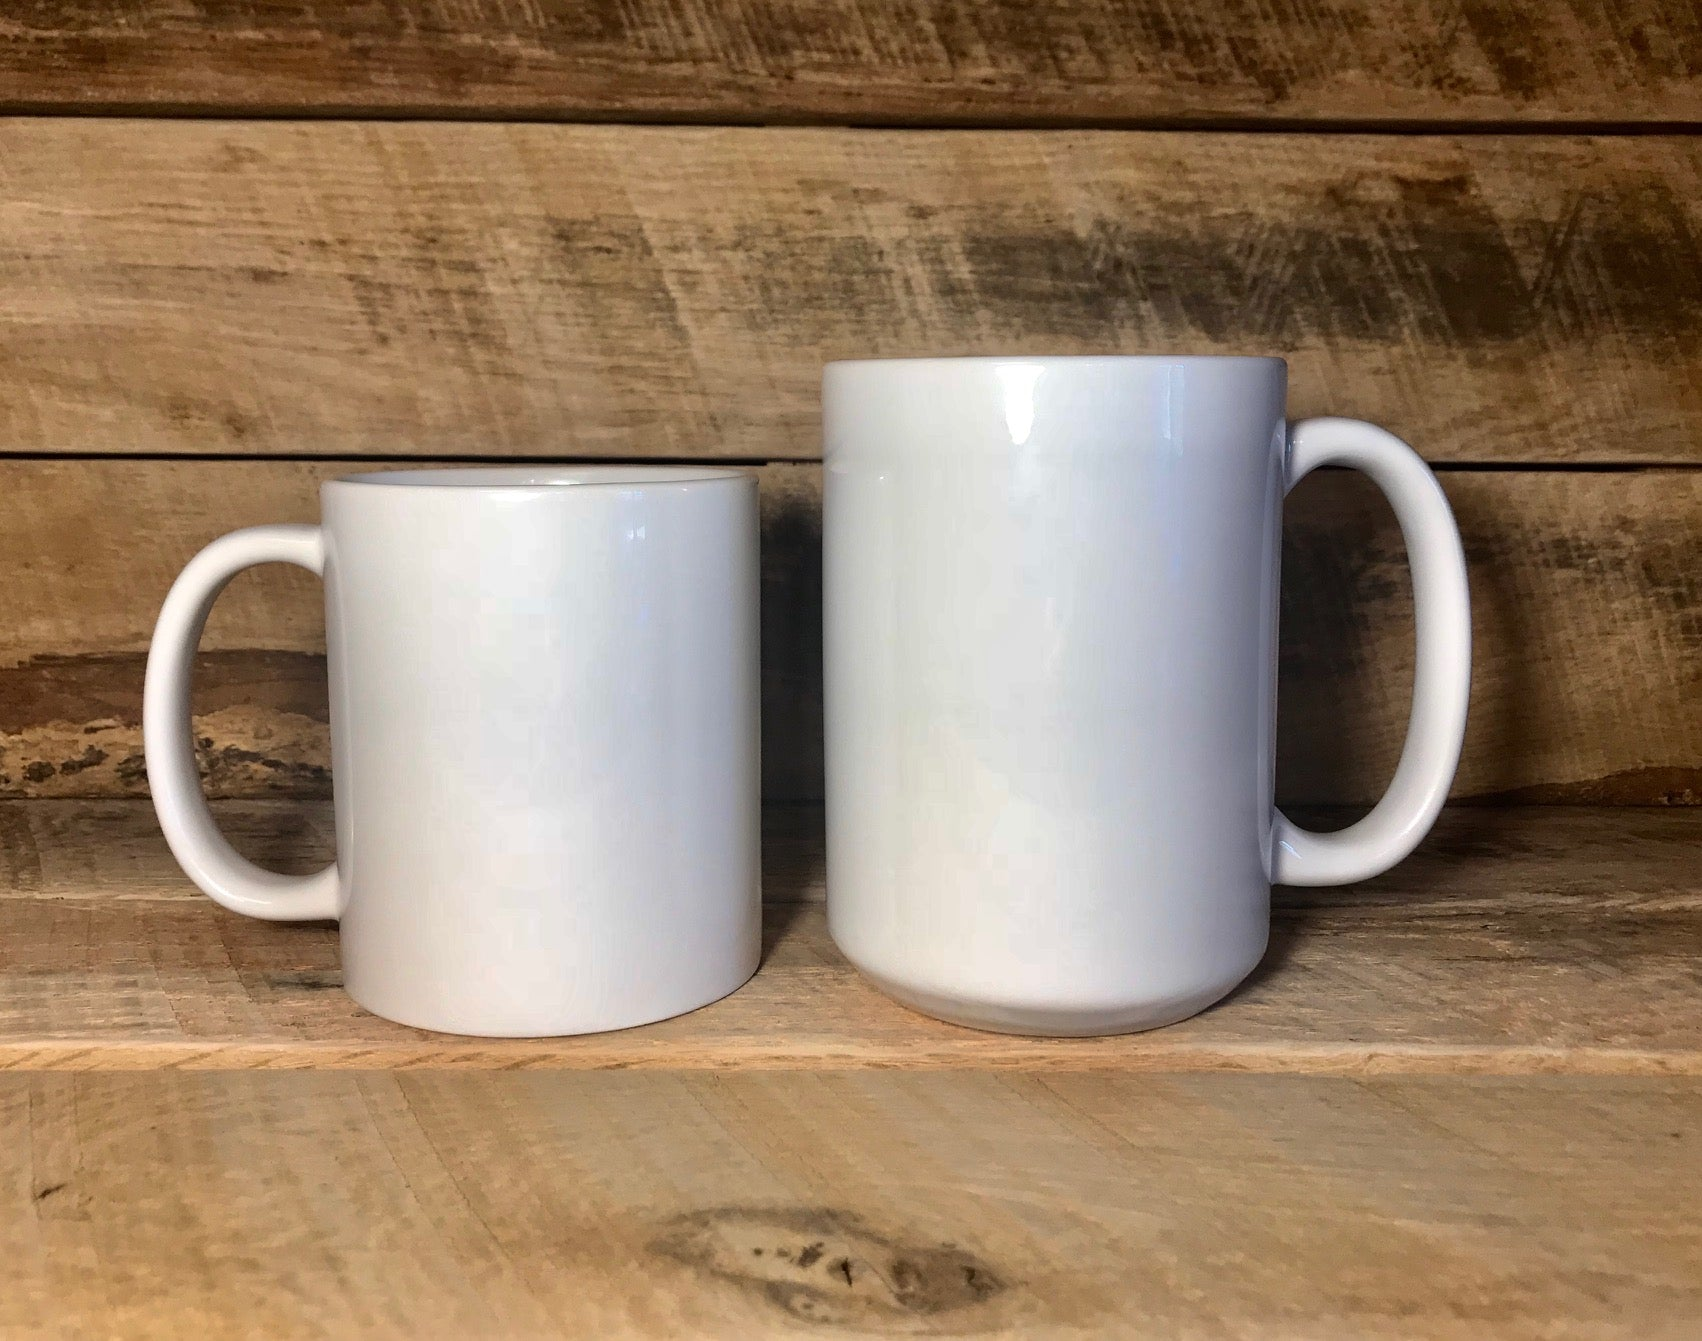 office coffee cups. Funny Mug Coffee Mugs Gift For Co Worker Office Cups